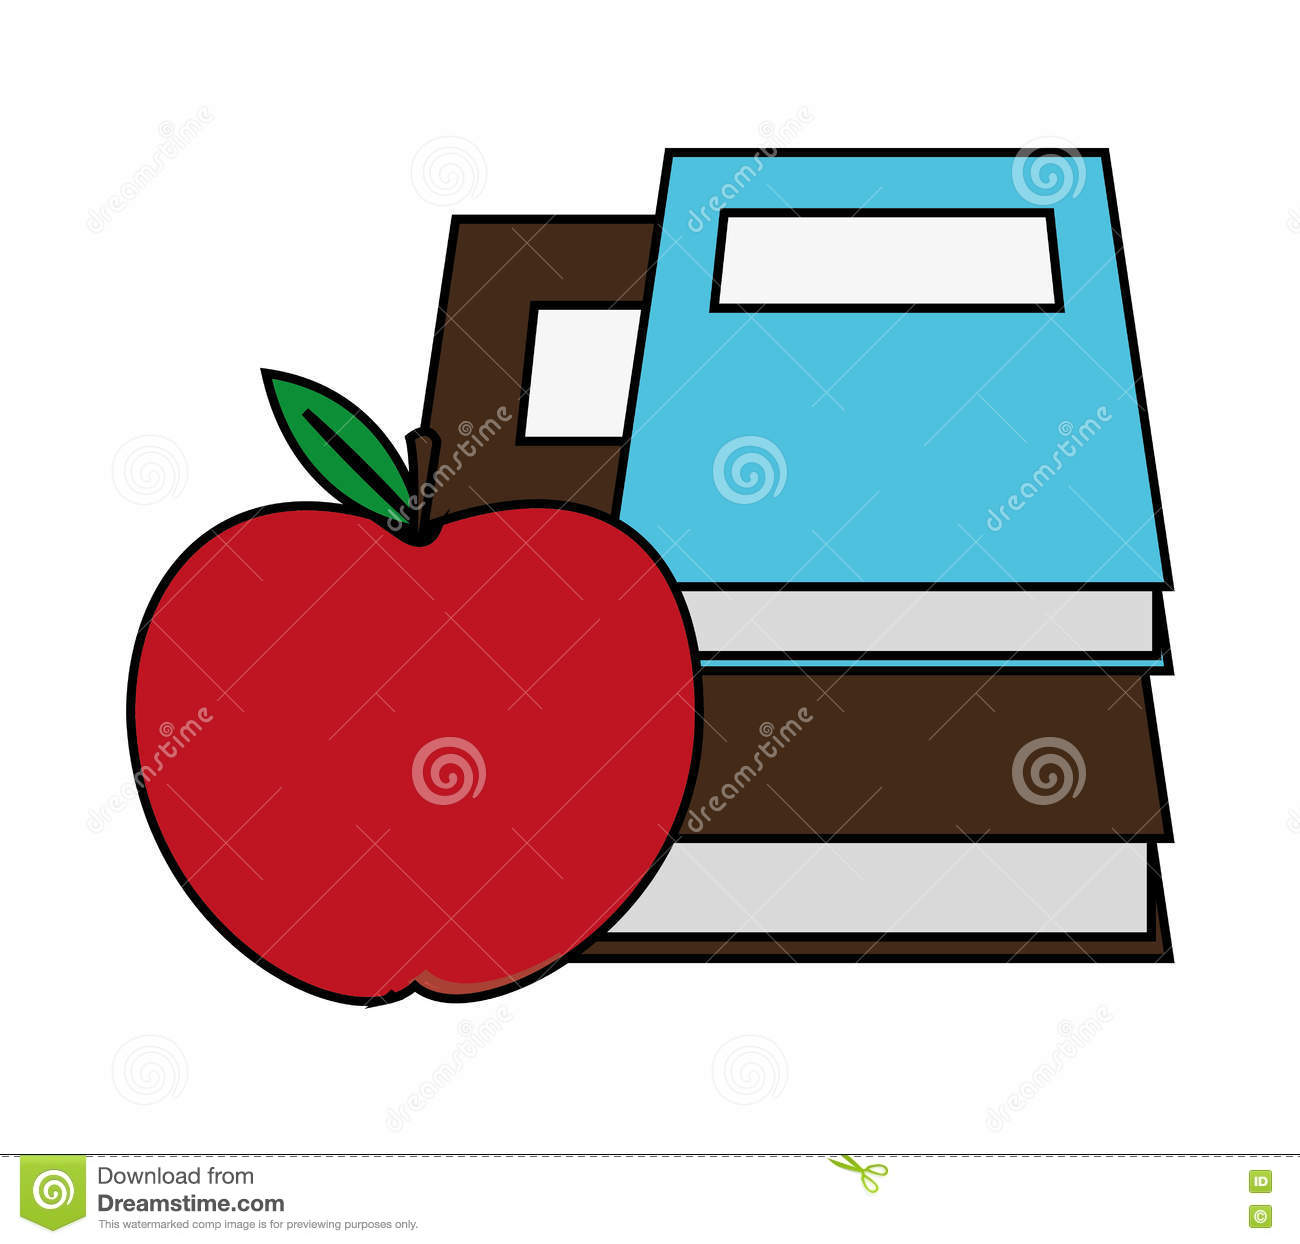 Apple cartoons illustrations vector stock images for Apple design book